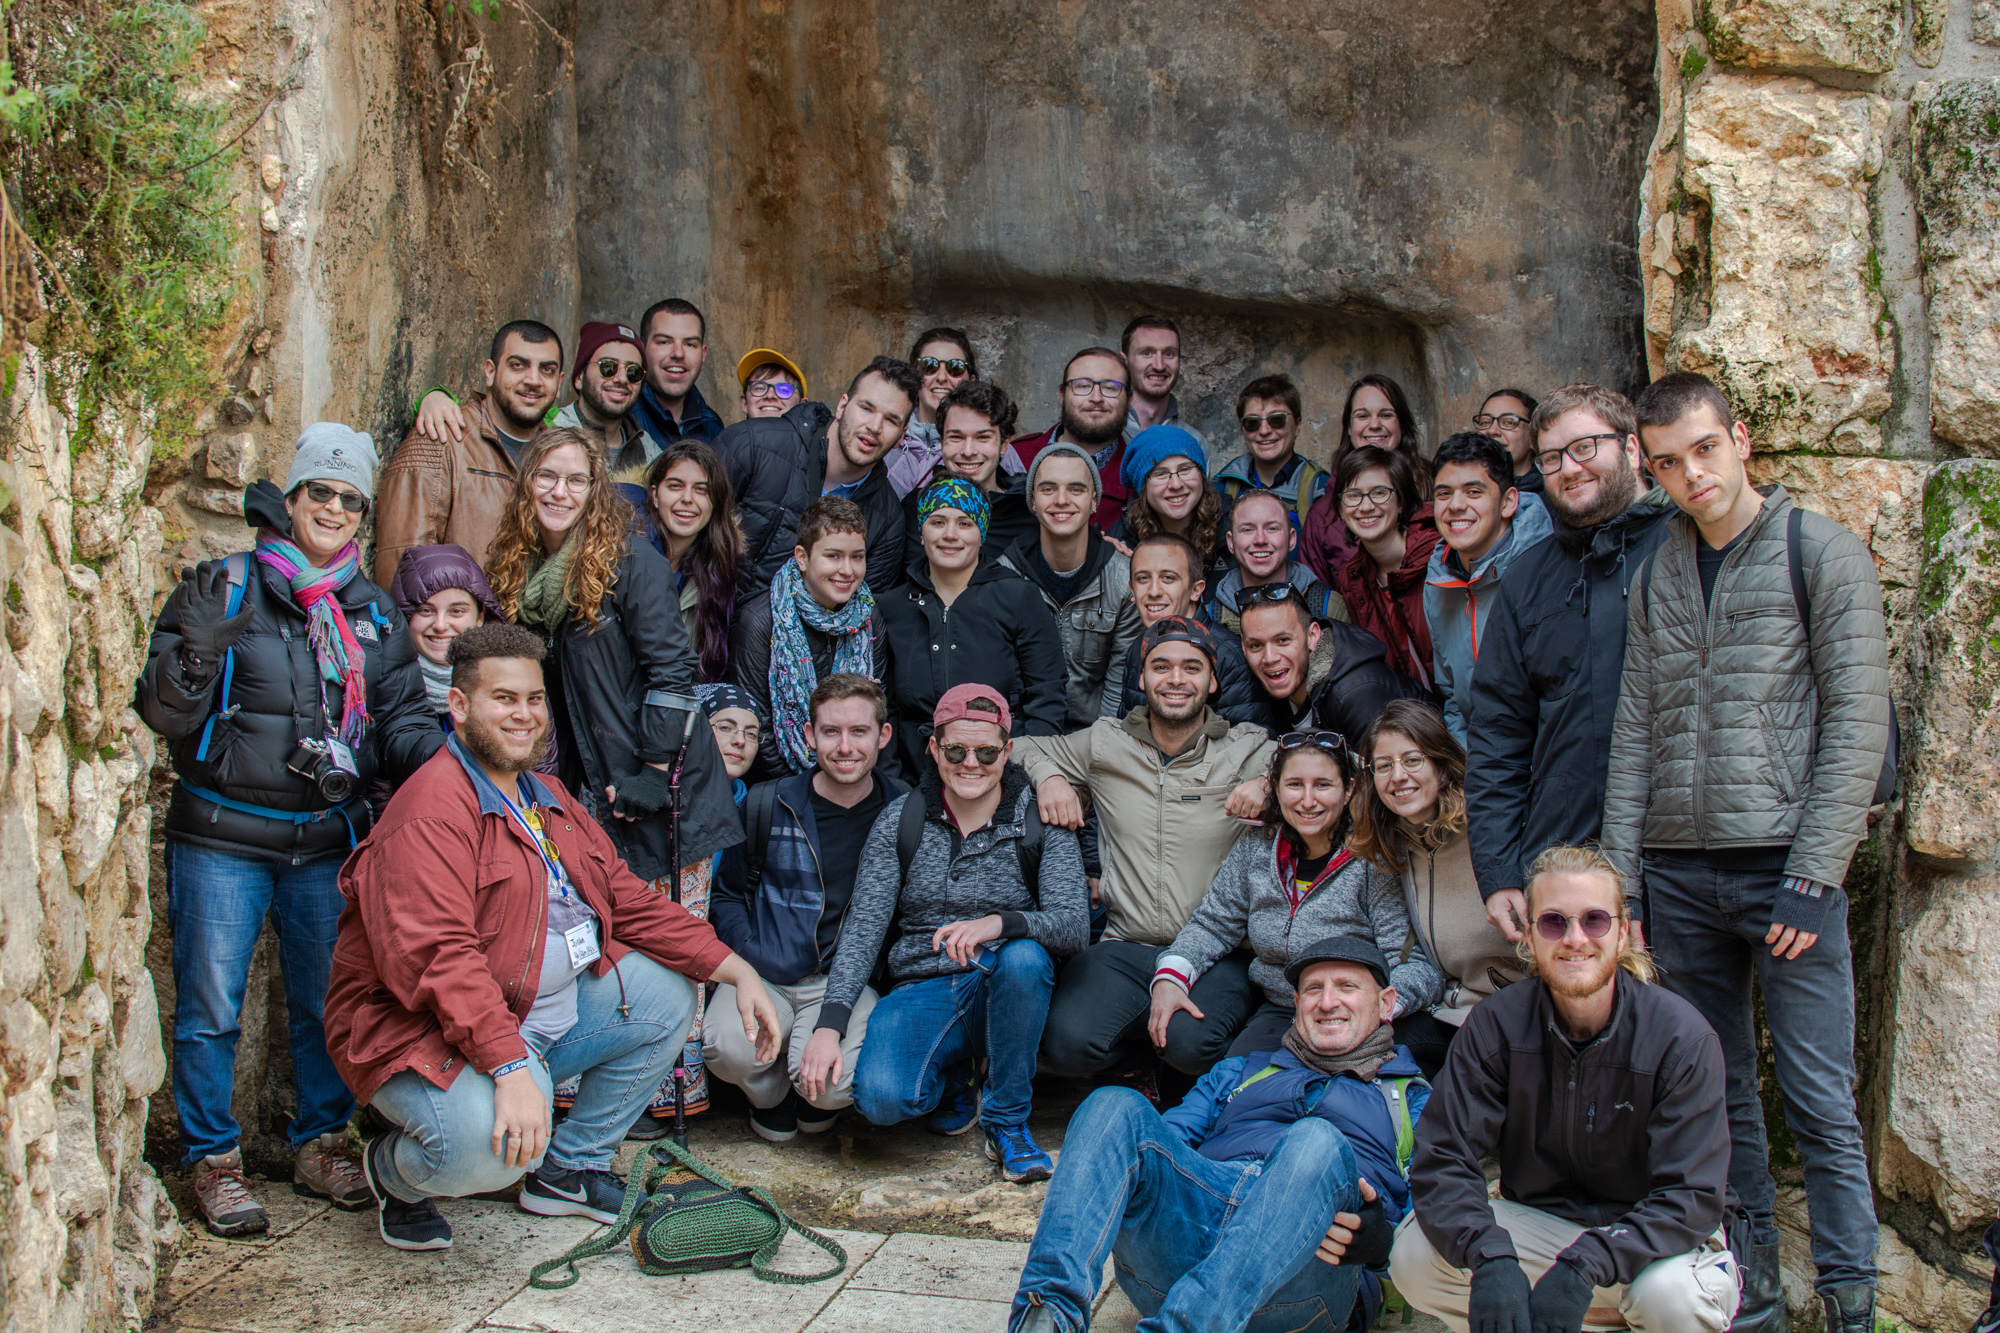 A group picture of all of us. Taken in Jerusalem, but had to throw it here first for context of who I was with. So much love for every single person in this picture!